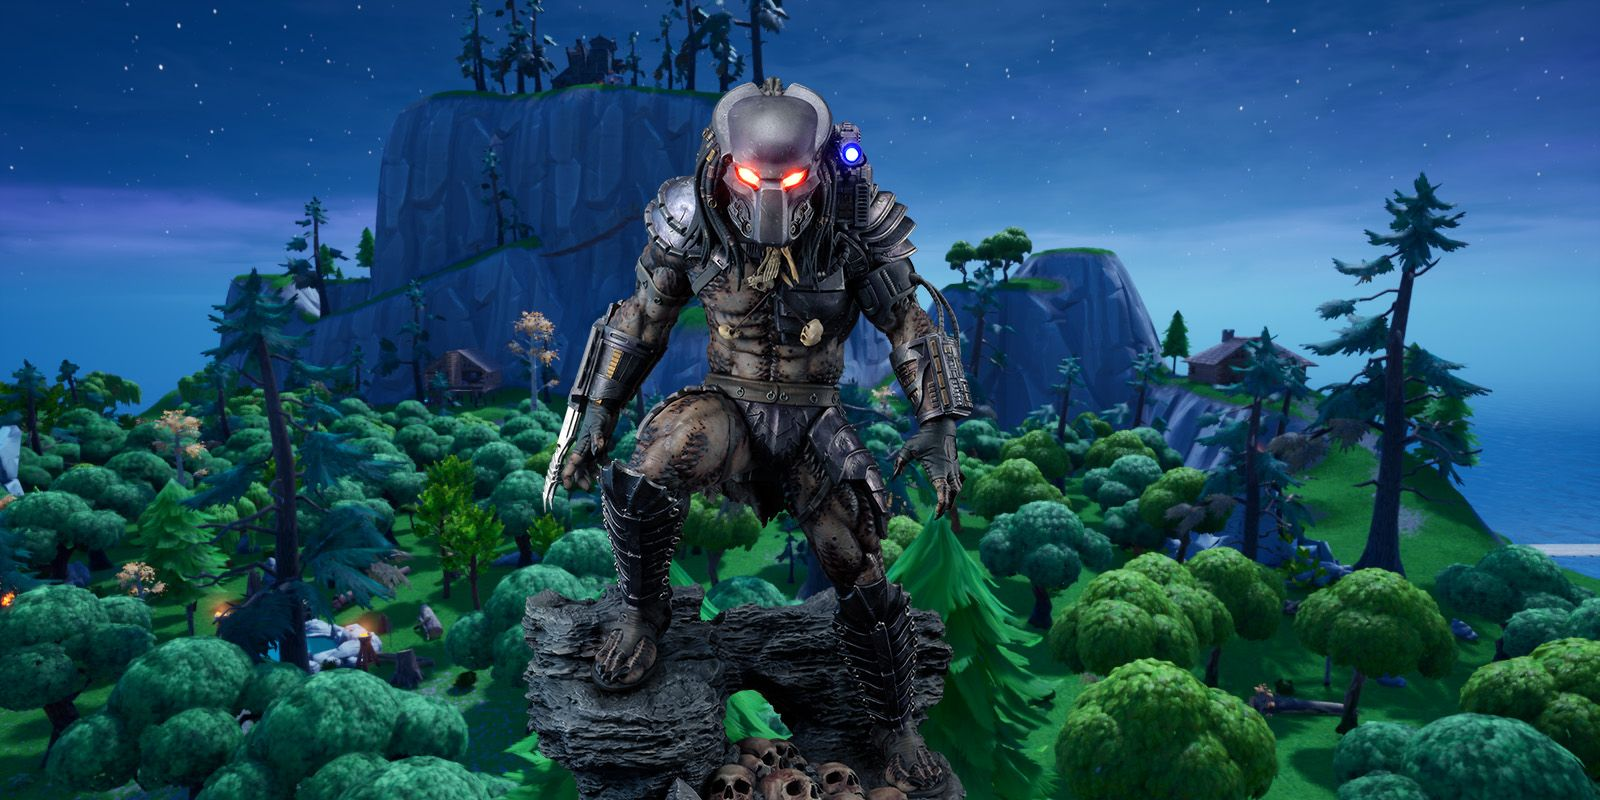 How to Get the Predator Skin in Fortnite - Download How to Get the Predator Skin in Fortnite for FREE - Free Cheats for Games